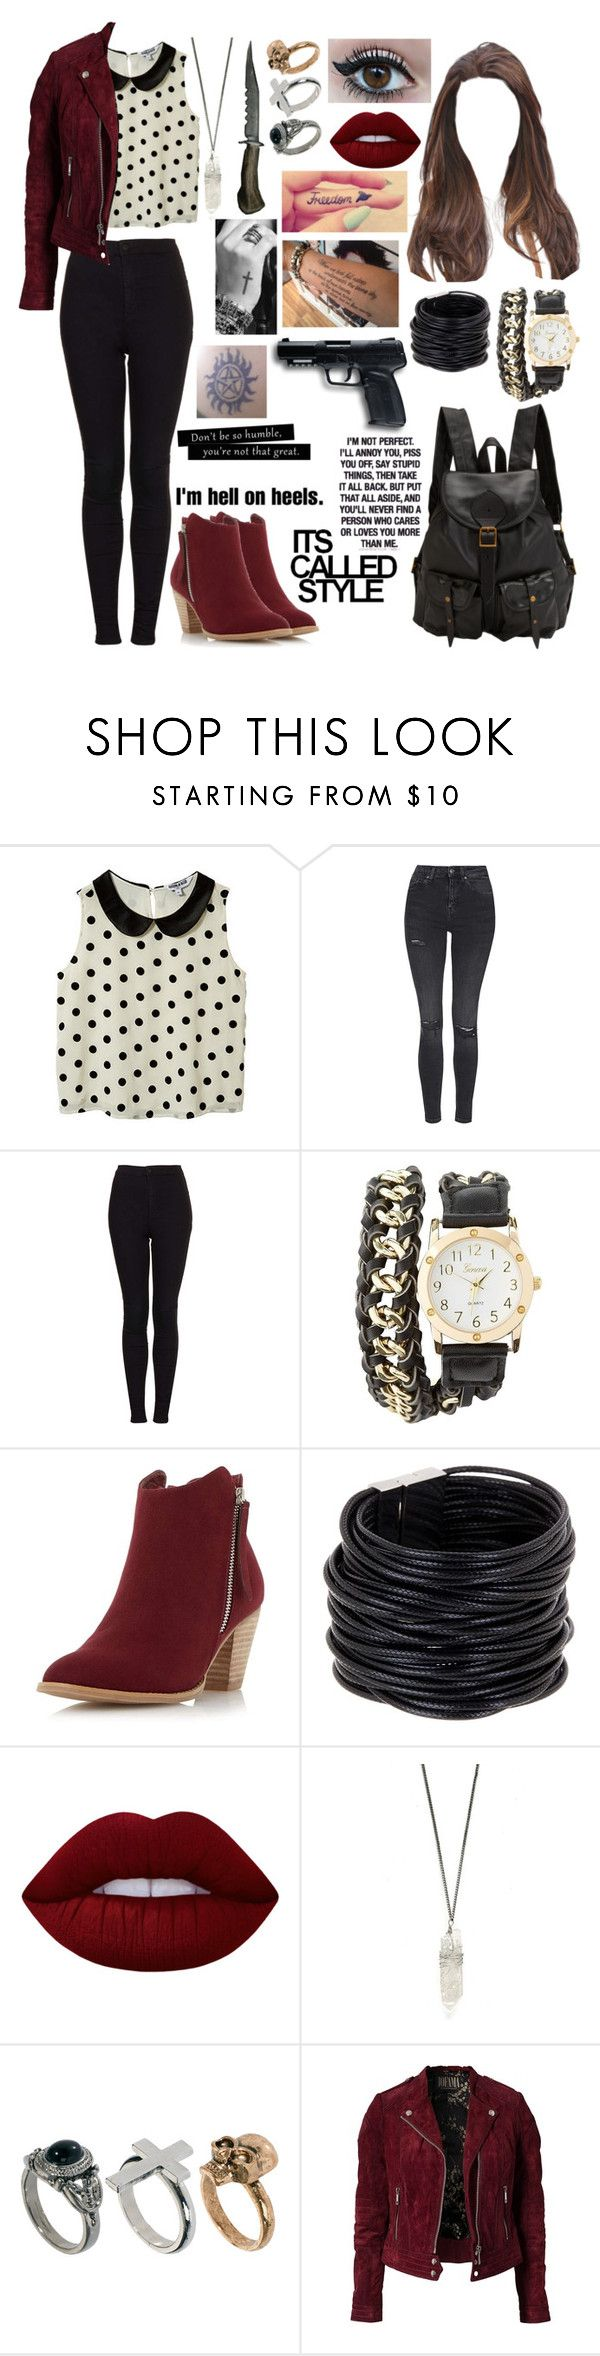 """""""Untitled #507"""" by skh-siera18 ❤ liked on Polyvore featuring New Look, Topshop, Charlotte Russe, Dorothy Perkins, Saachi, Lime Crime, River Island, Jofama, All Black and Jas M.B."""